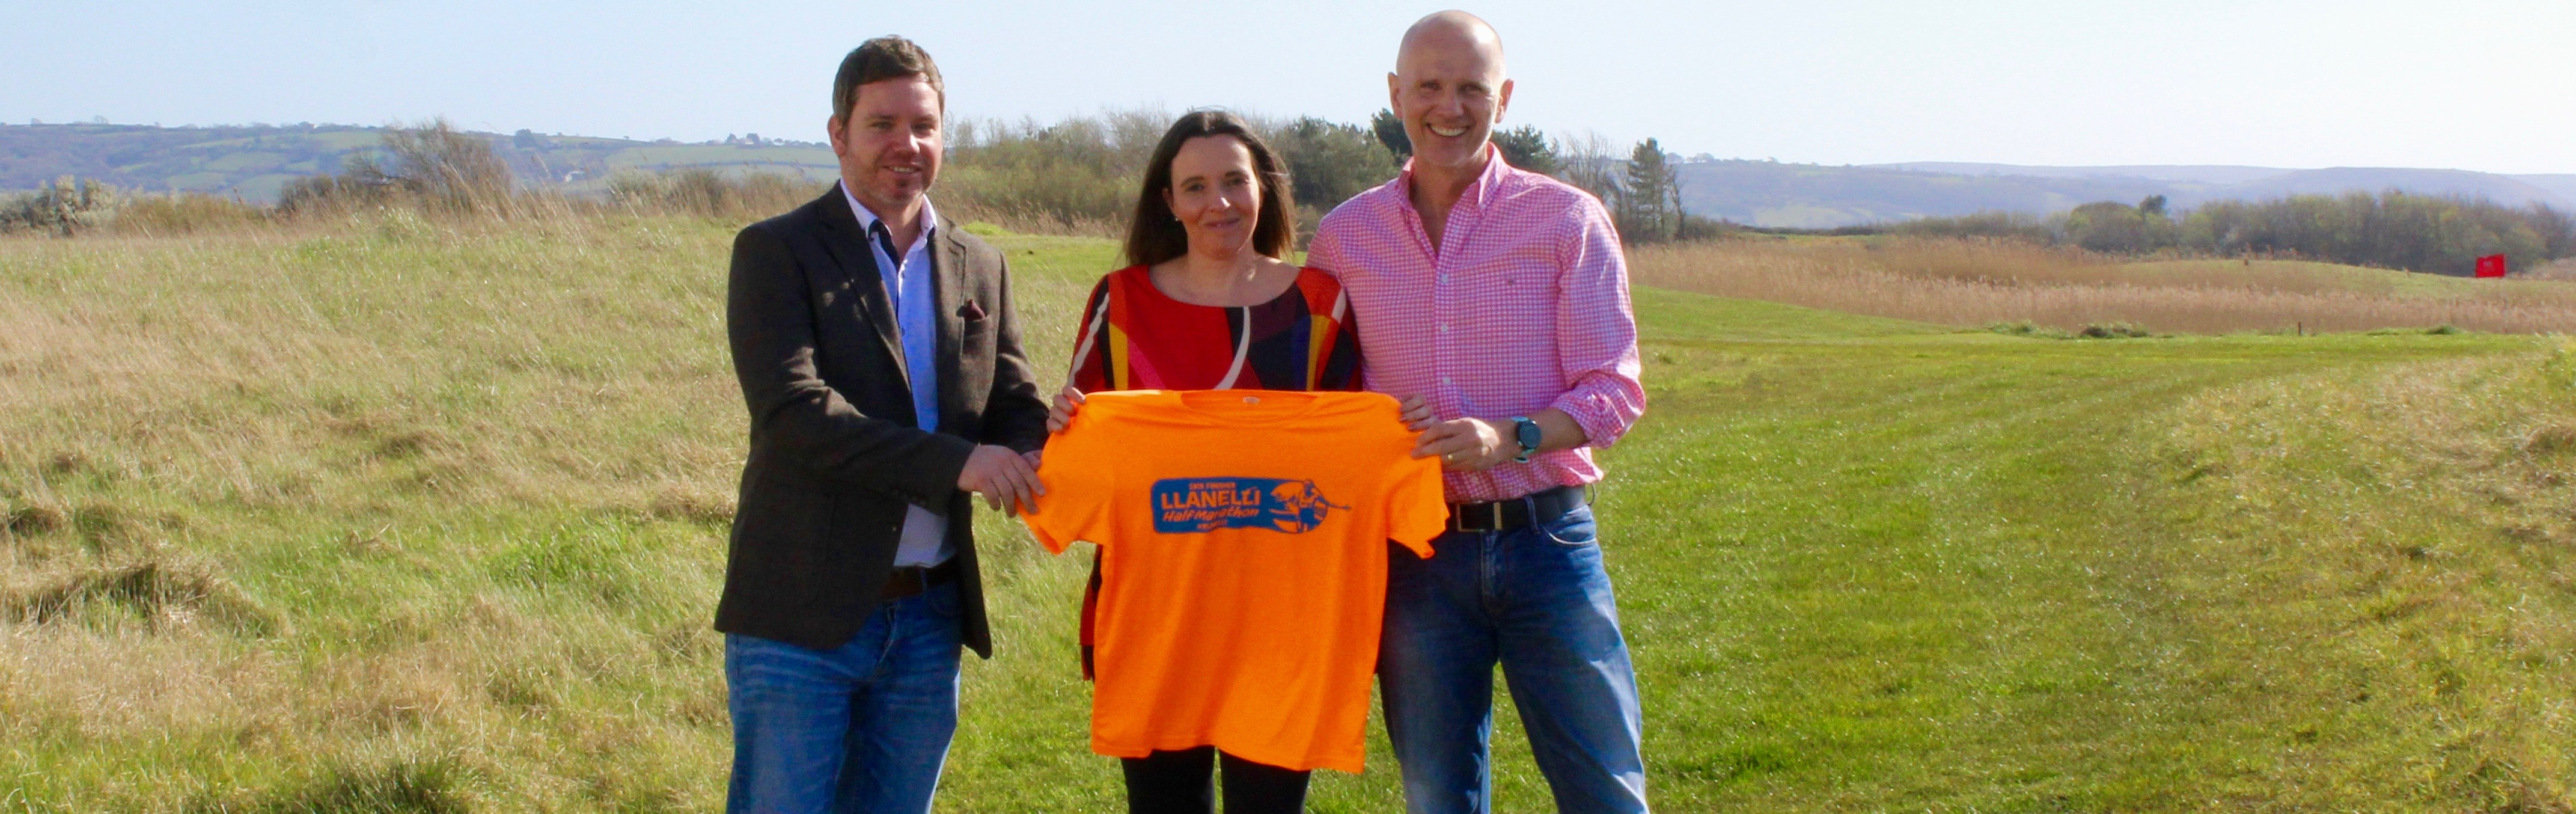 Llanelli Half Marathon Announces Local Company As Headline Partner